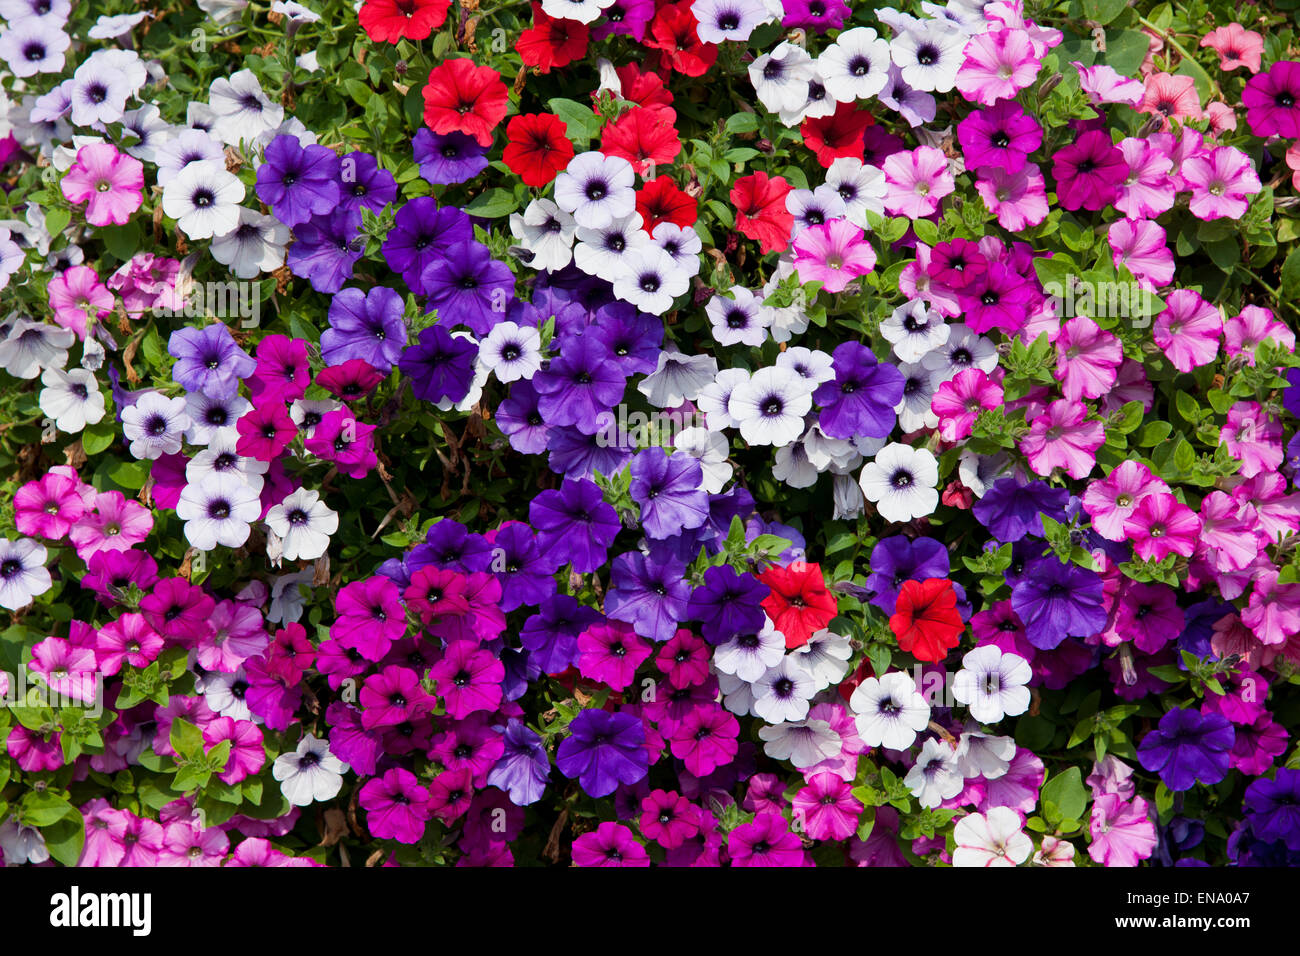 detail of trailing petunia in pink, mauve, white, red and violet - Stock Image